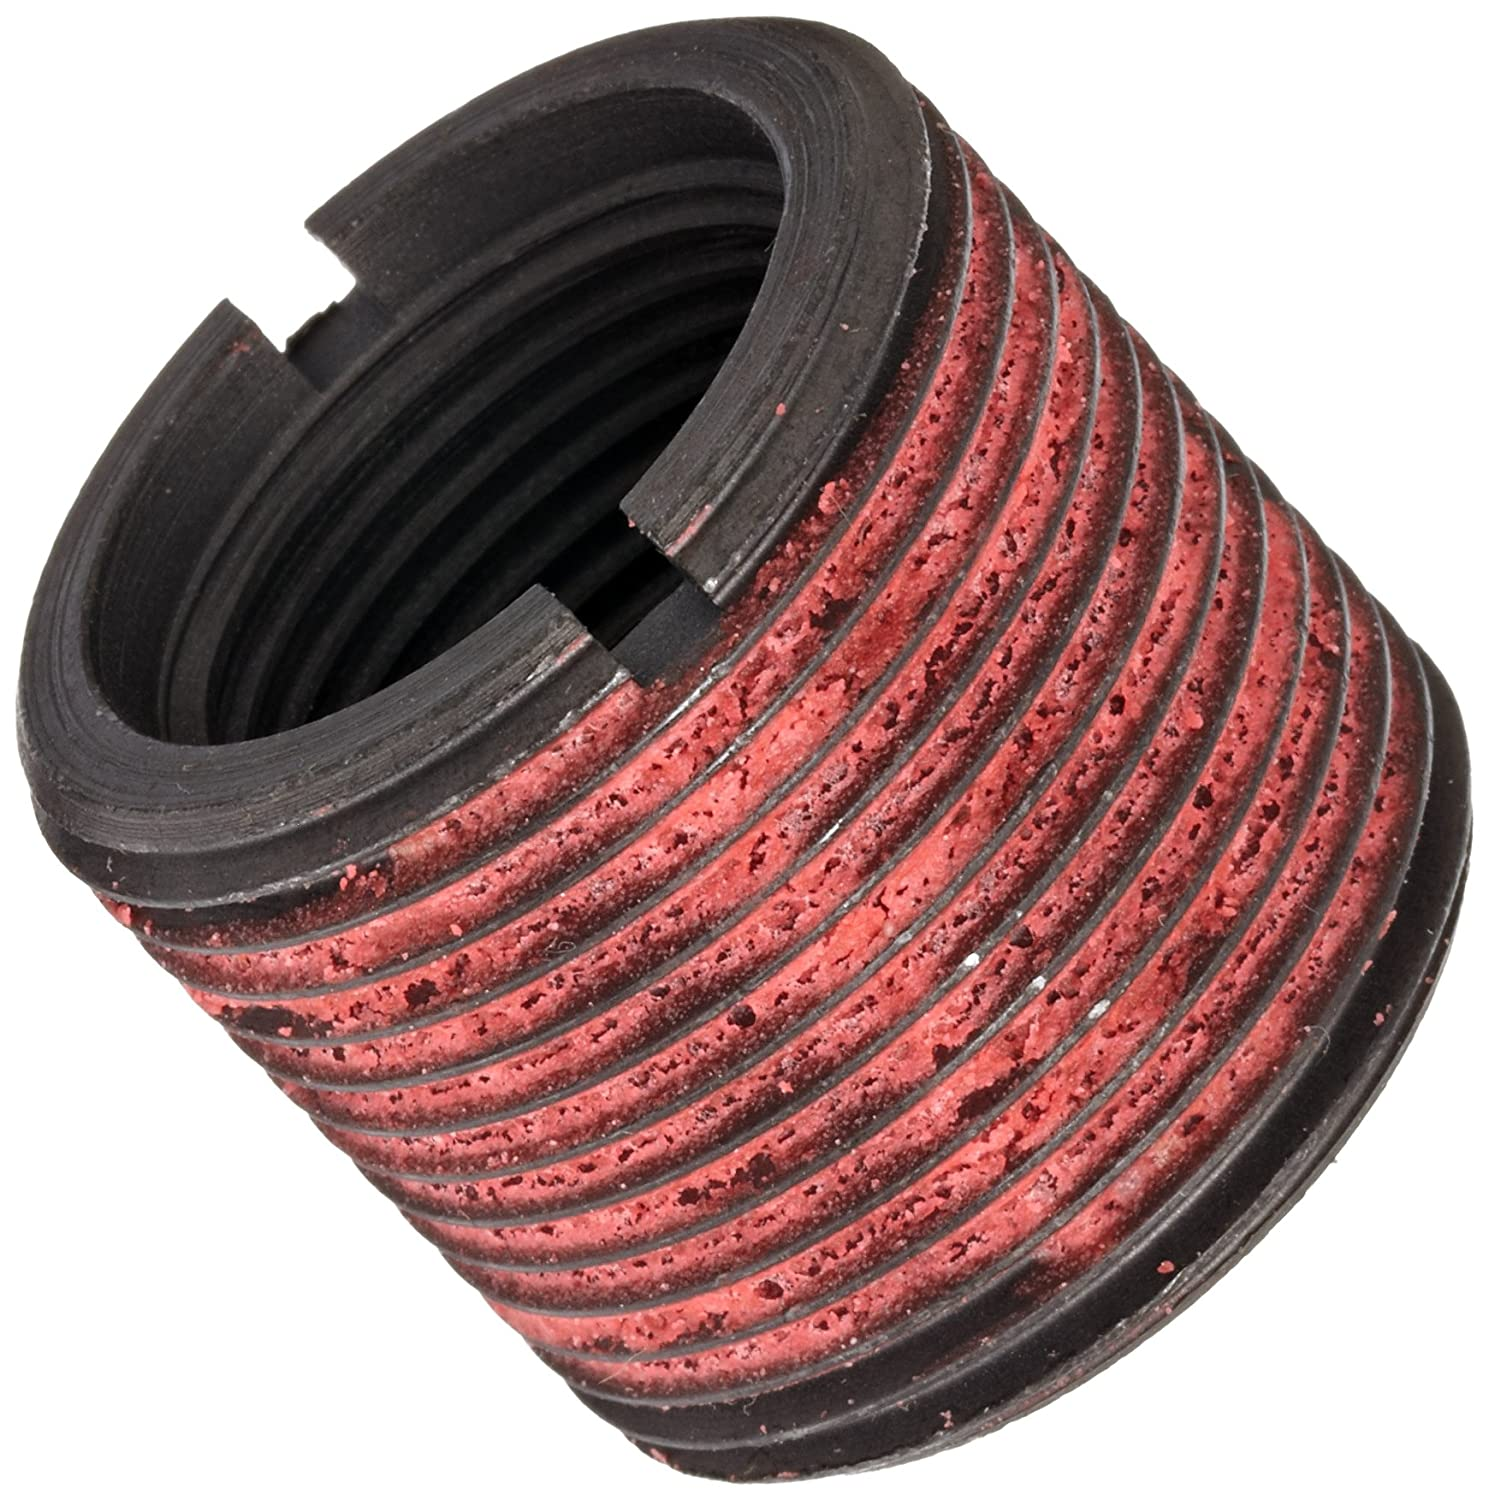 3//8-16 Internal Threads C12L14 Carbon Steel Made in US Pack of 5 Meets AISI 12L14 1.000 Length E-Z Lok Externally Threaded Insert 9//16-12 External Threads